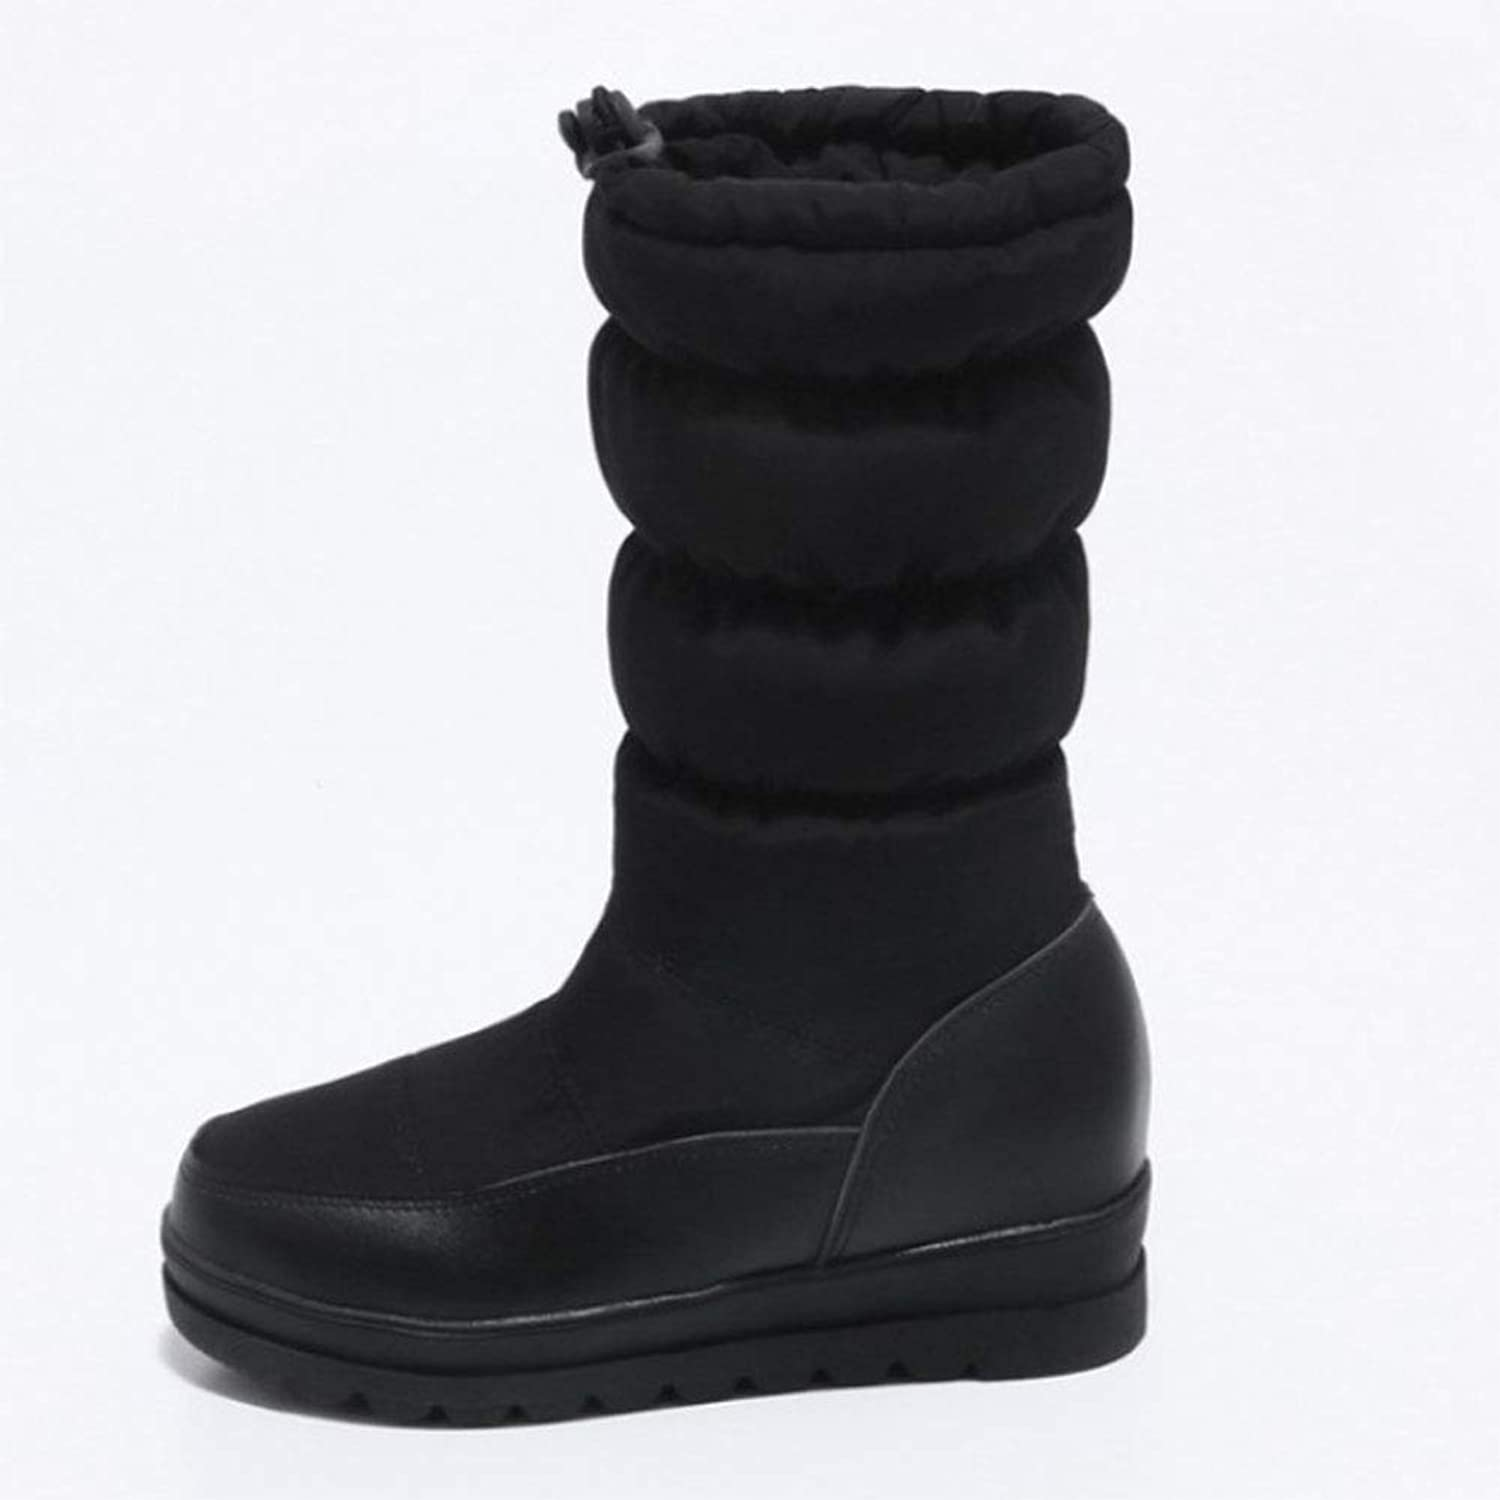 Women's Snow Boots Wedges in The Tube Round Head Down Cotton shoes Waterproof Platform Solid color Casual Cotton Boots